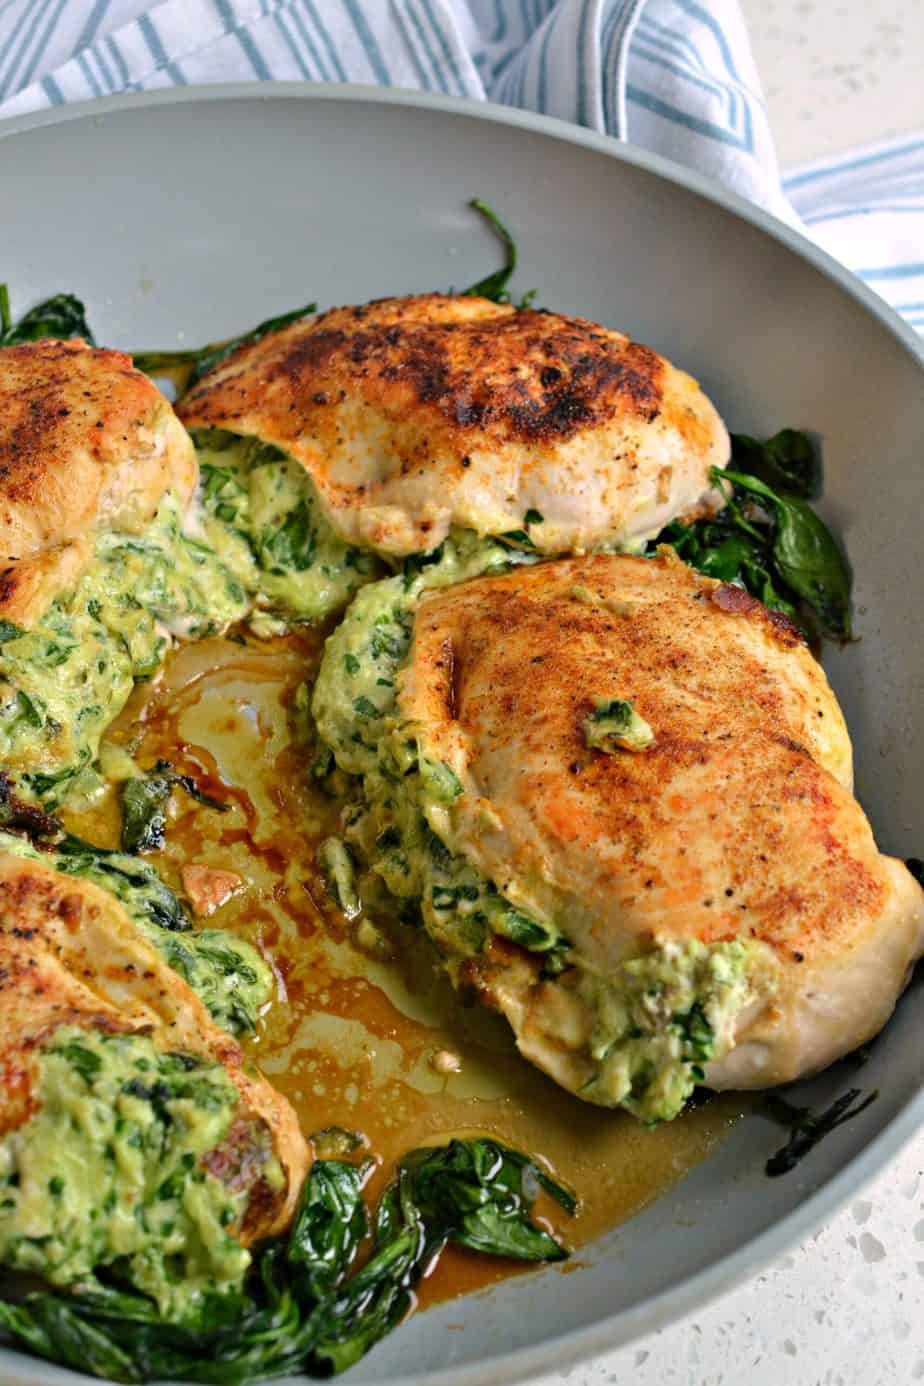 This Spinach Stuffed Chicken is a delicious combination of chopped spinach, herb cream cheese, mozzarella, and Parmesan.